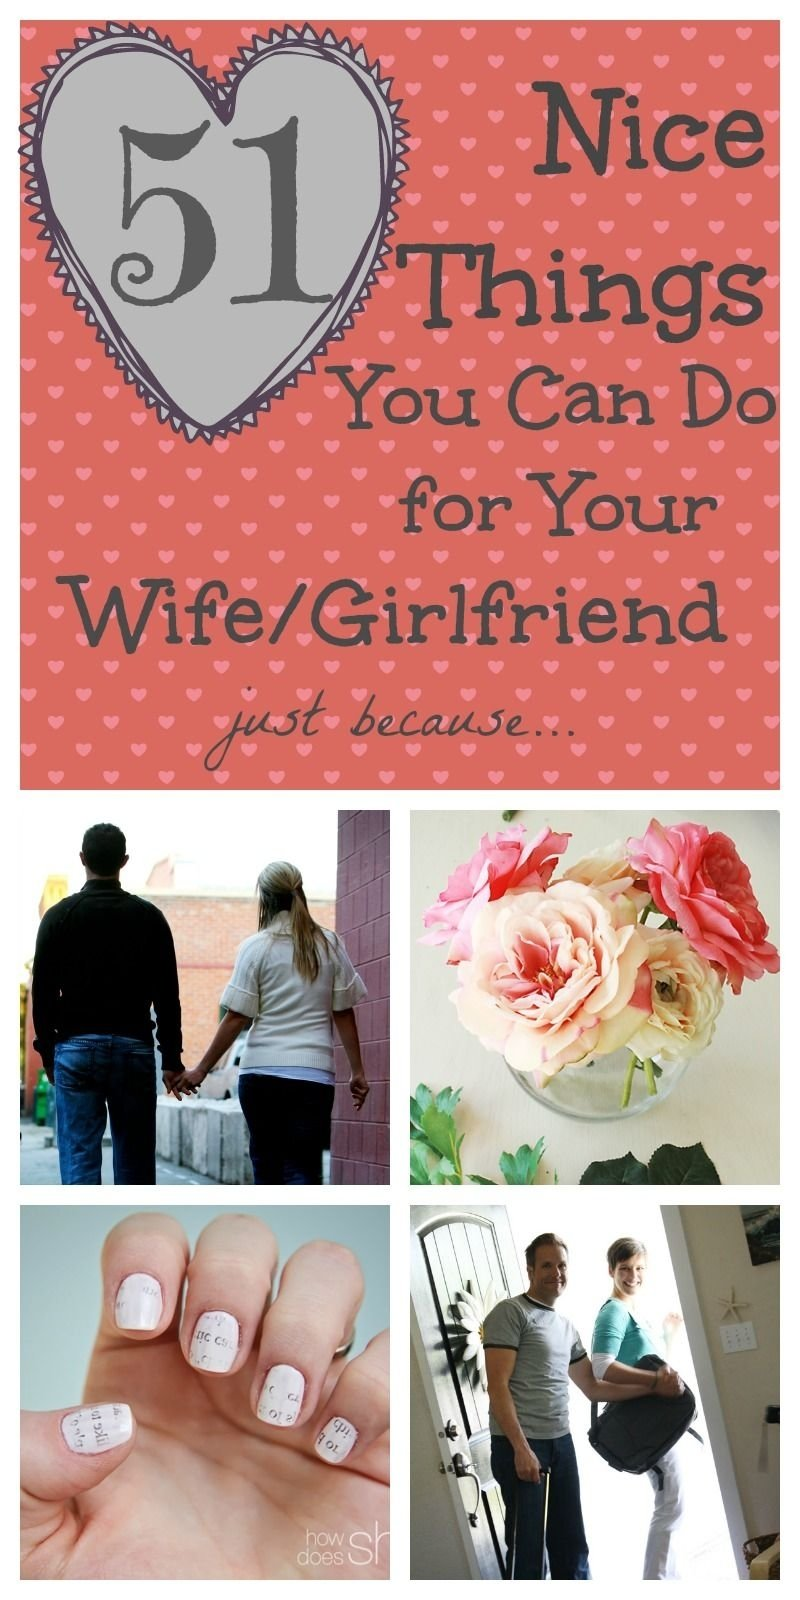 10 Trendy Romantic Ideas For My Wife nice things to do for your wife 50 ideas that will make her happy 1 2020